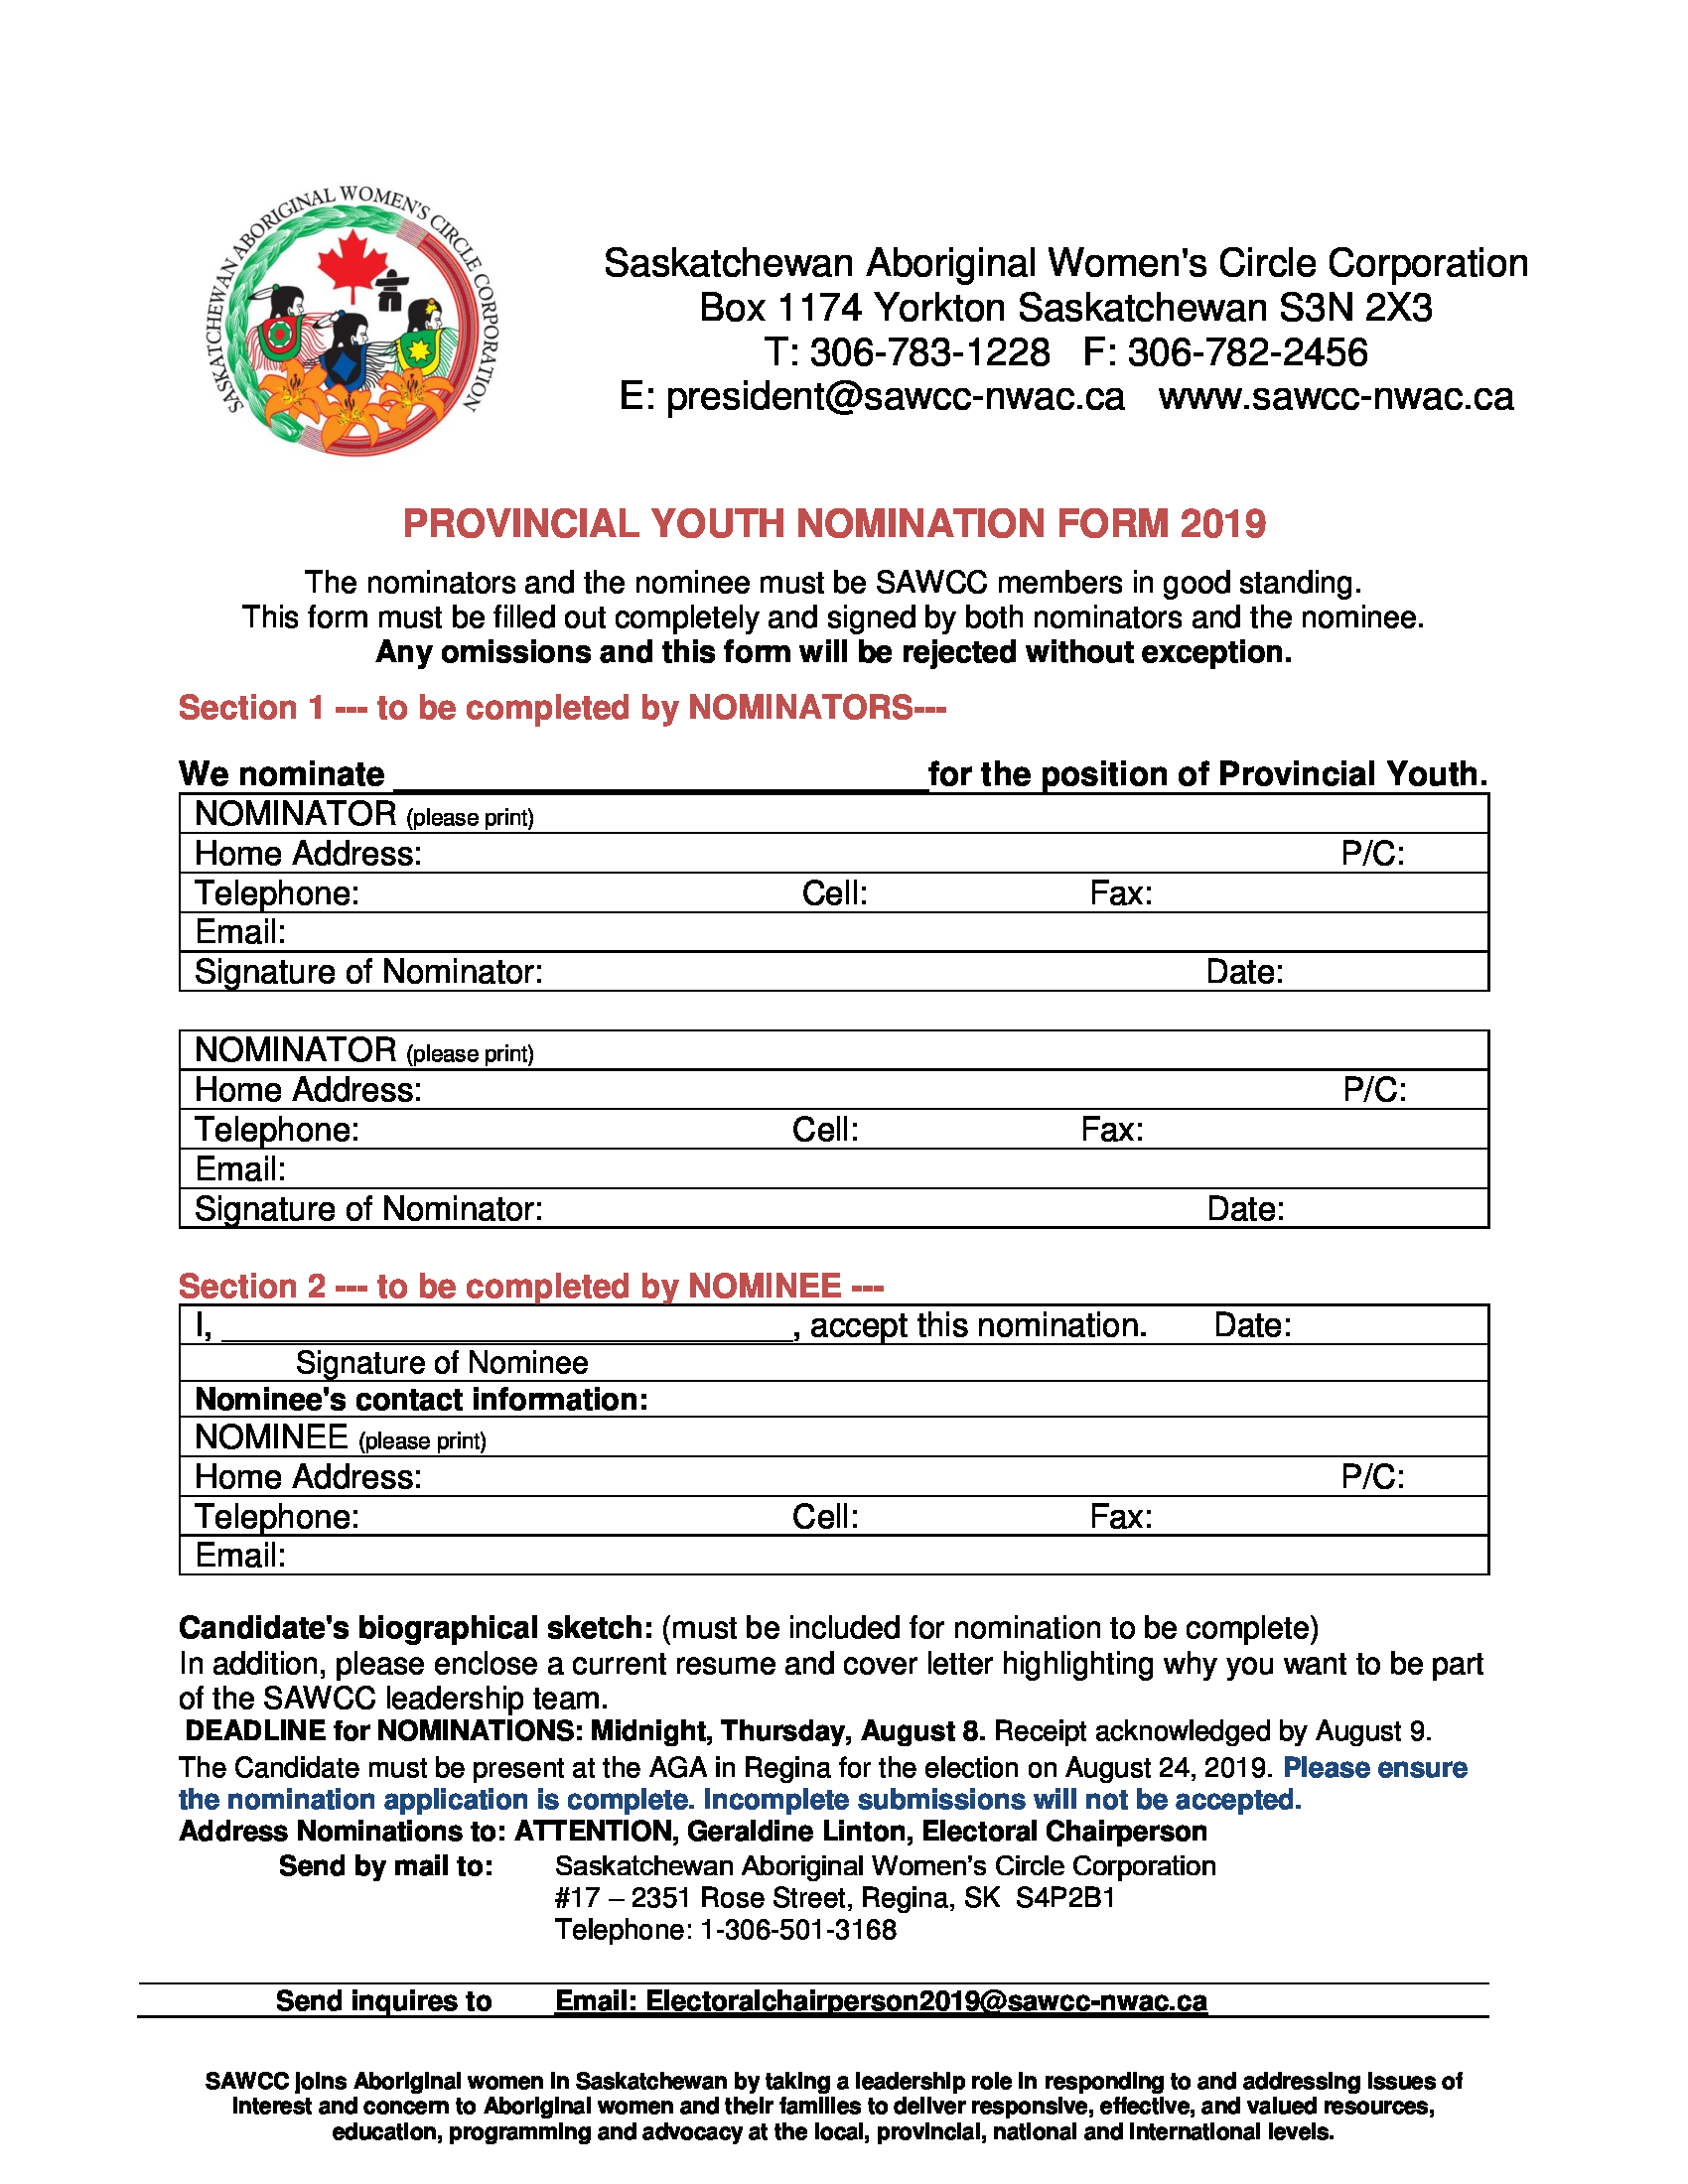 Provincial Youth Nomination Form -